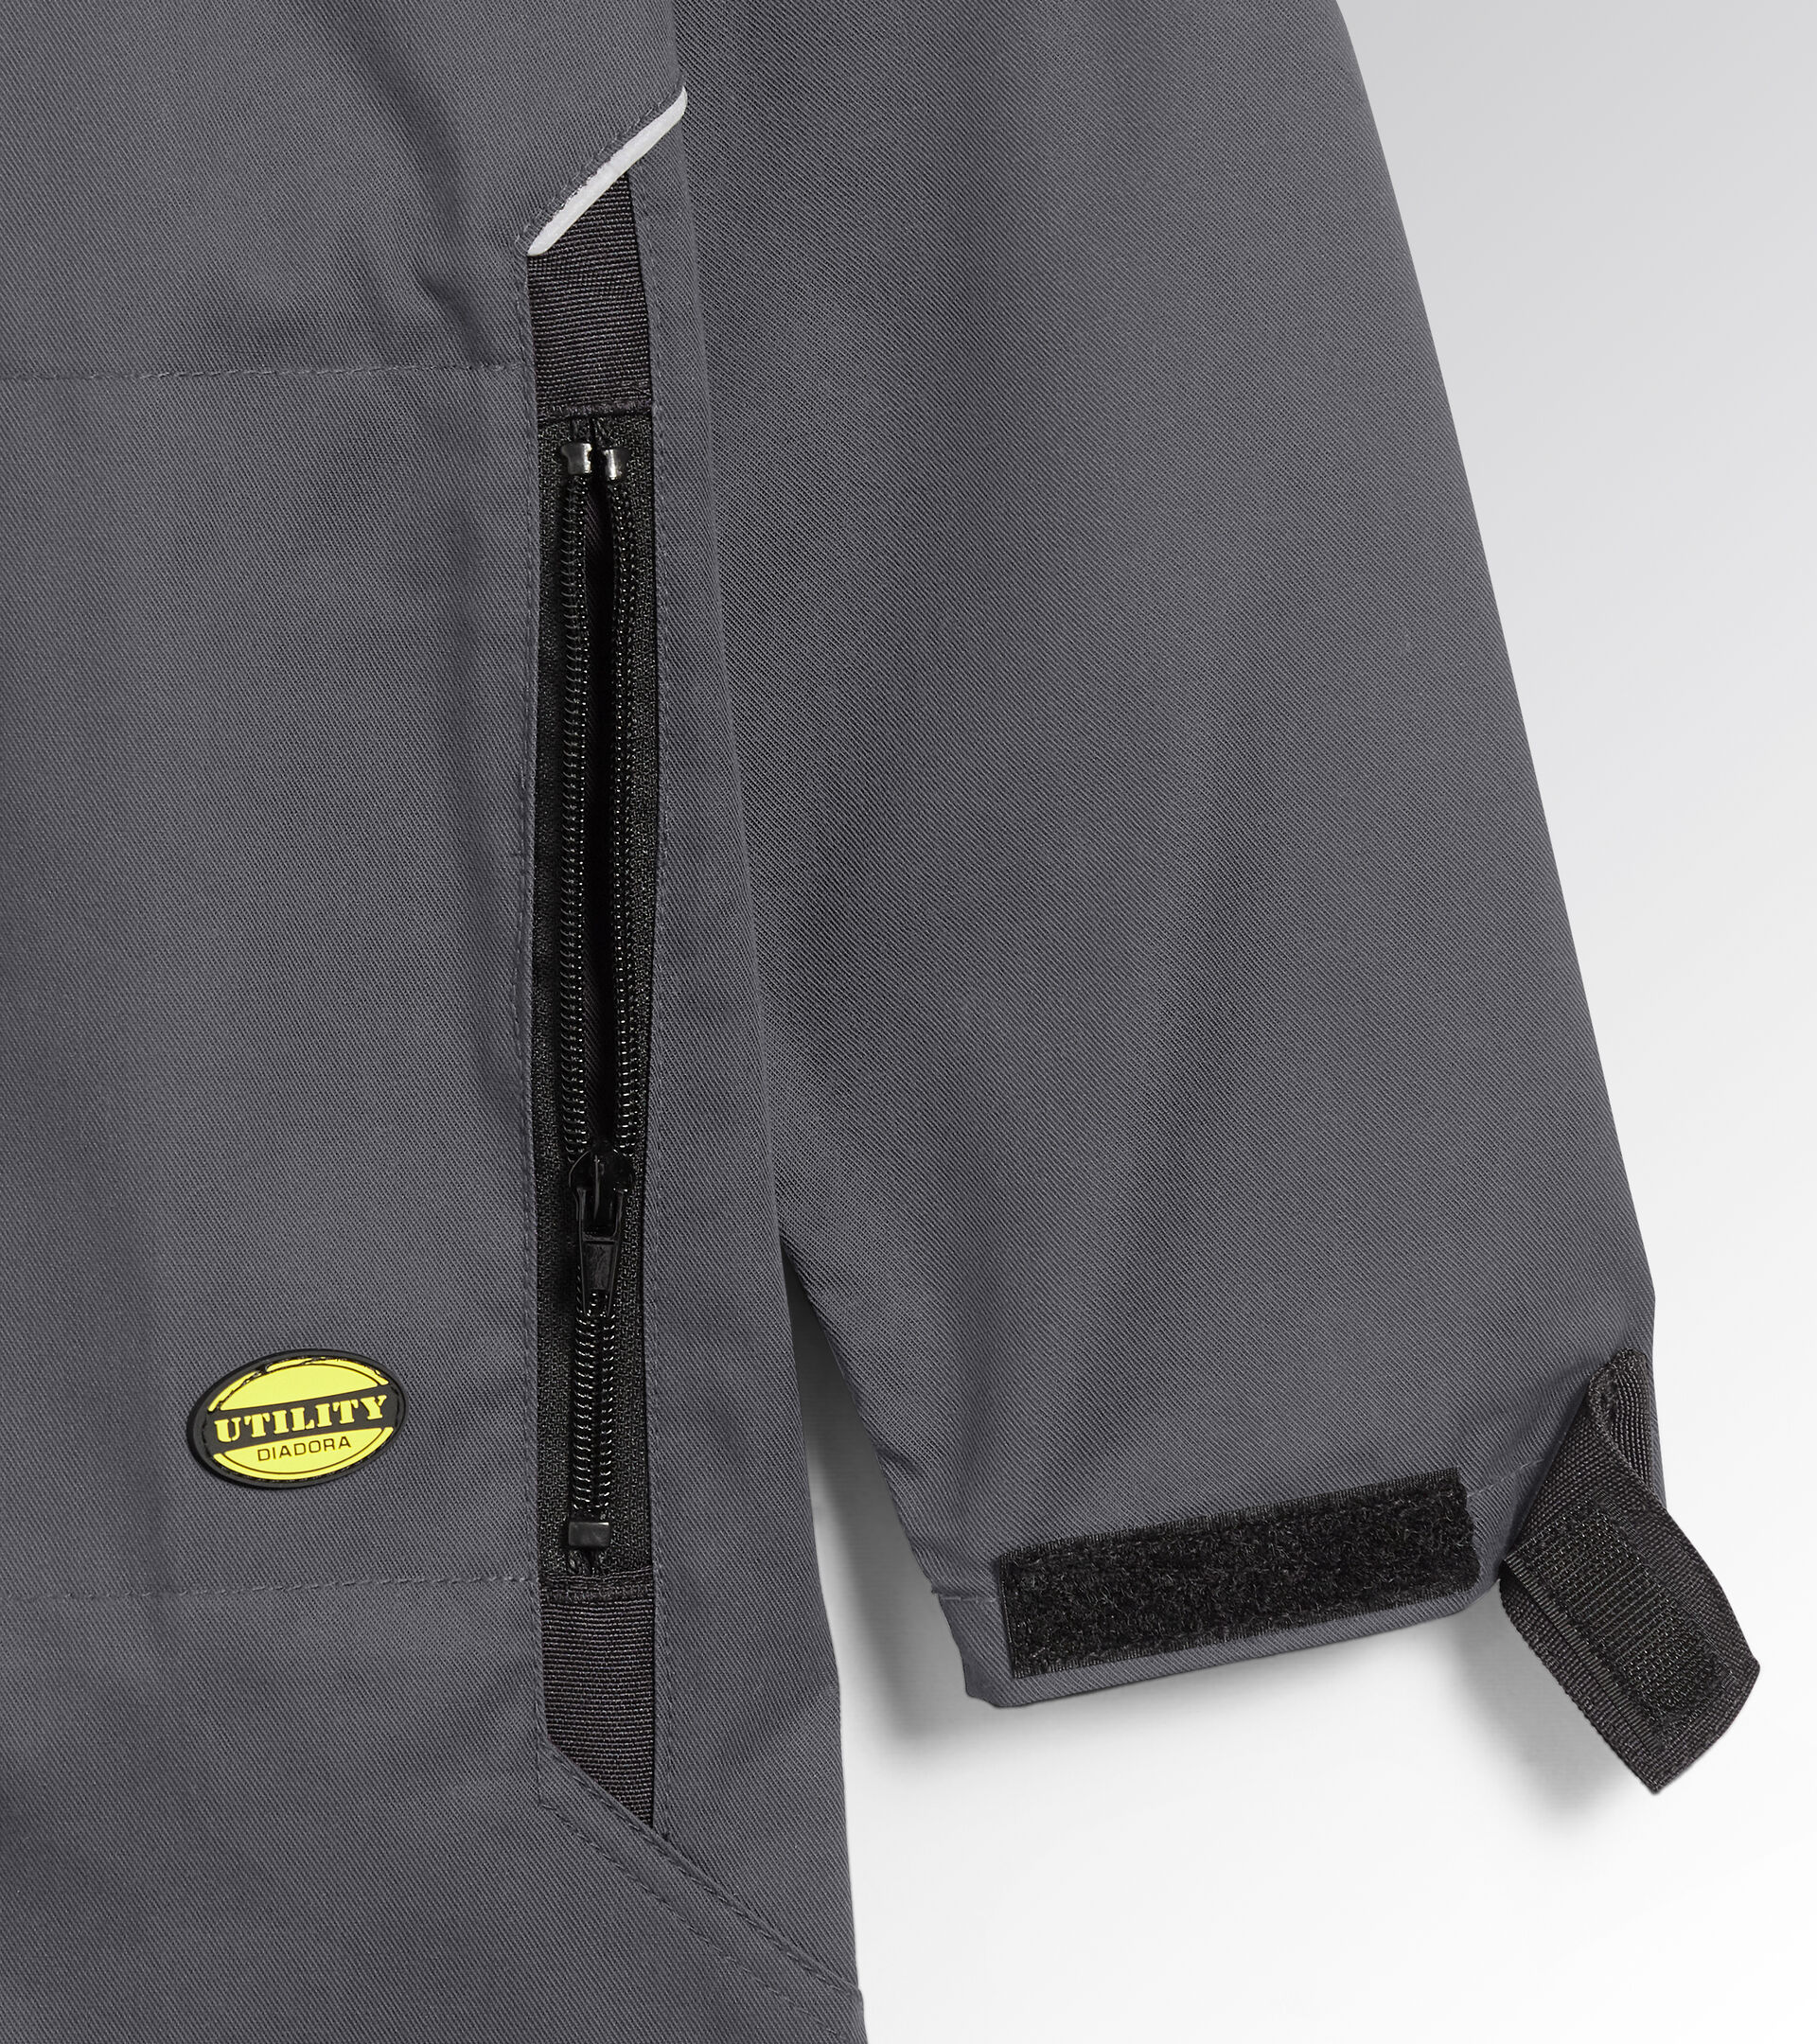 Apparel Utility UOMO COVERALL POLY STEEL GRAY Utility